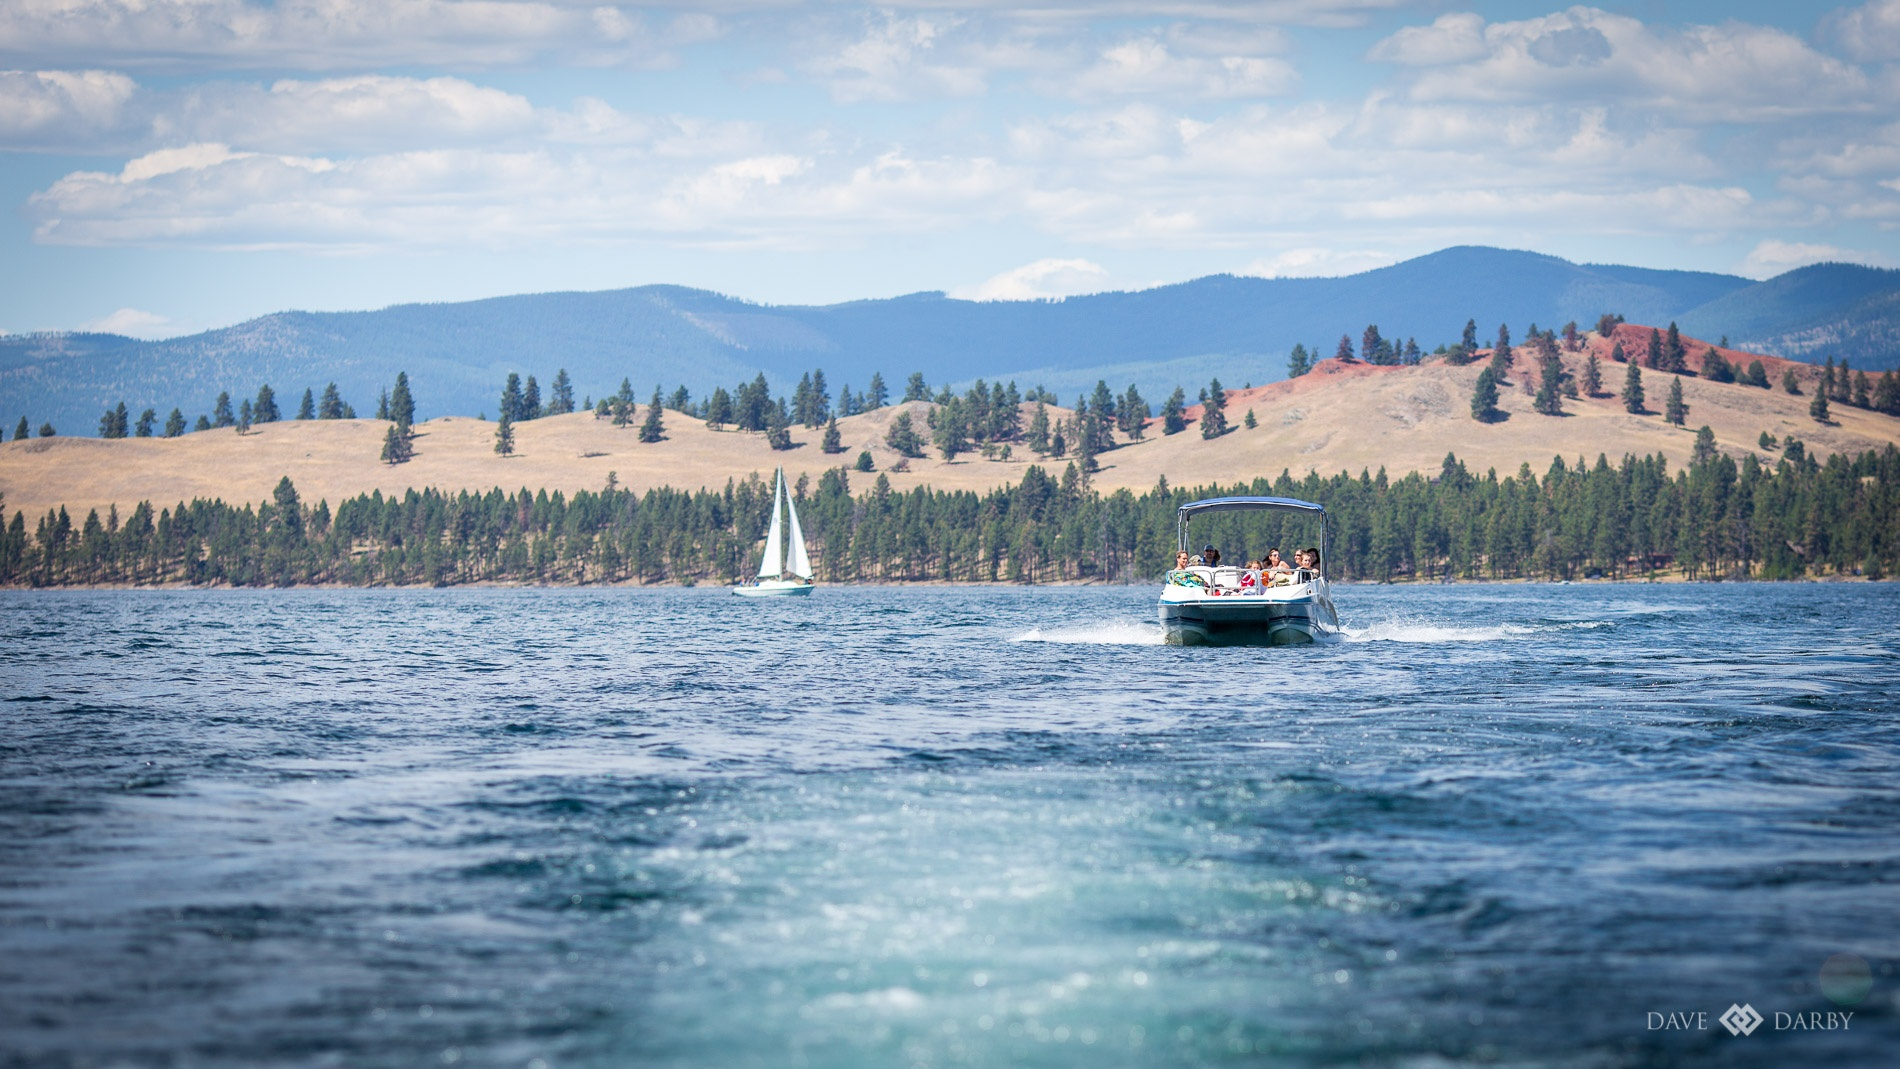 Summer Swimming at Flathead Lake